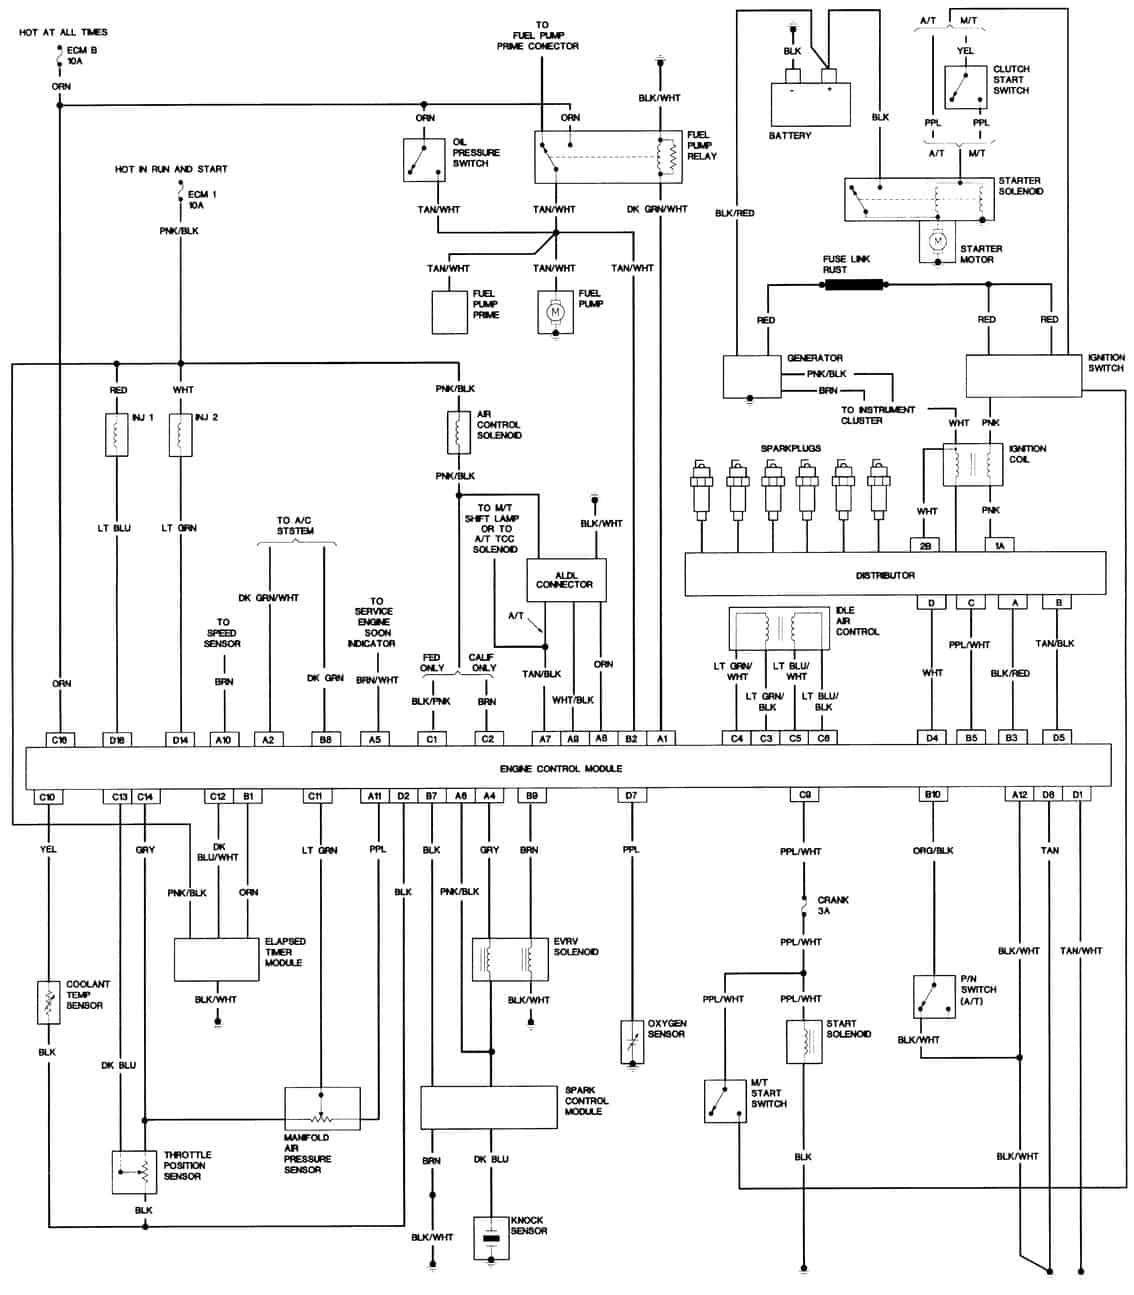 4x4 Chevy S10 Wiring Diagram FULL Version HD Quality Wiring Diagram -  TIXADIAGRAM.AS4A.FRAS4A.FR